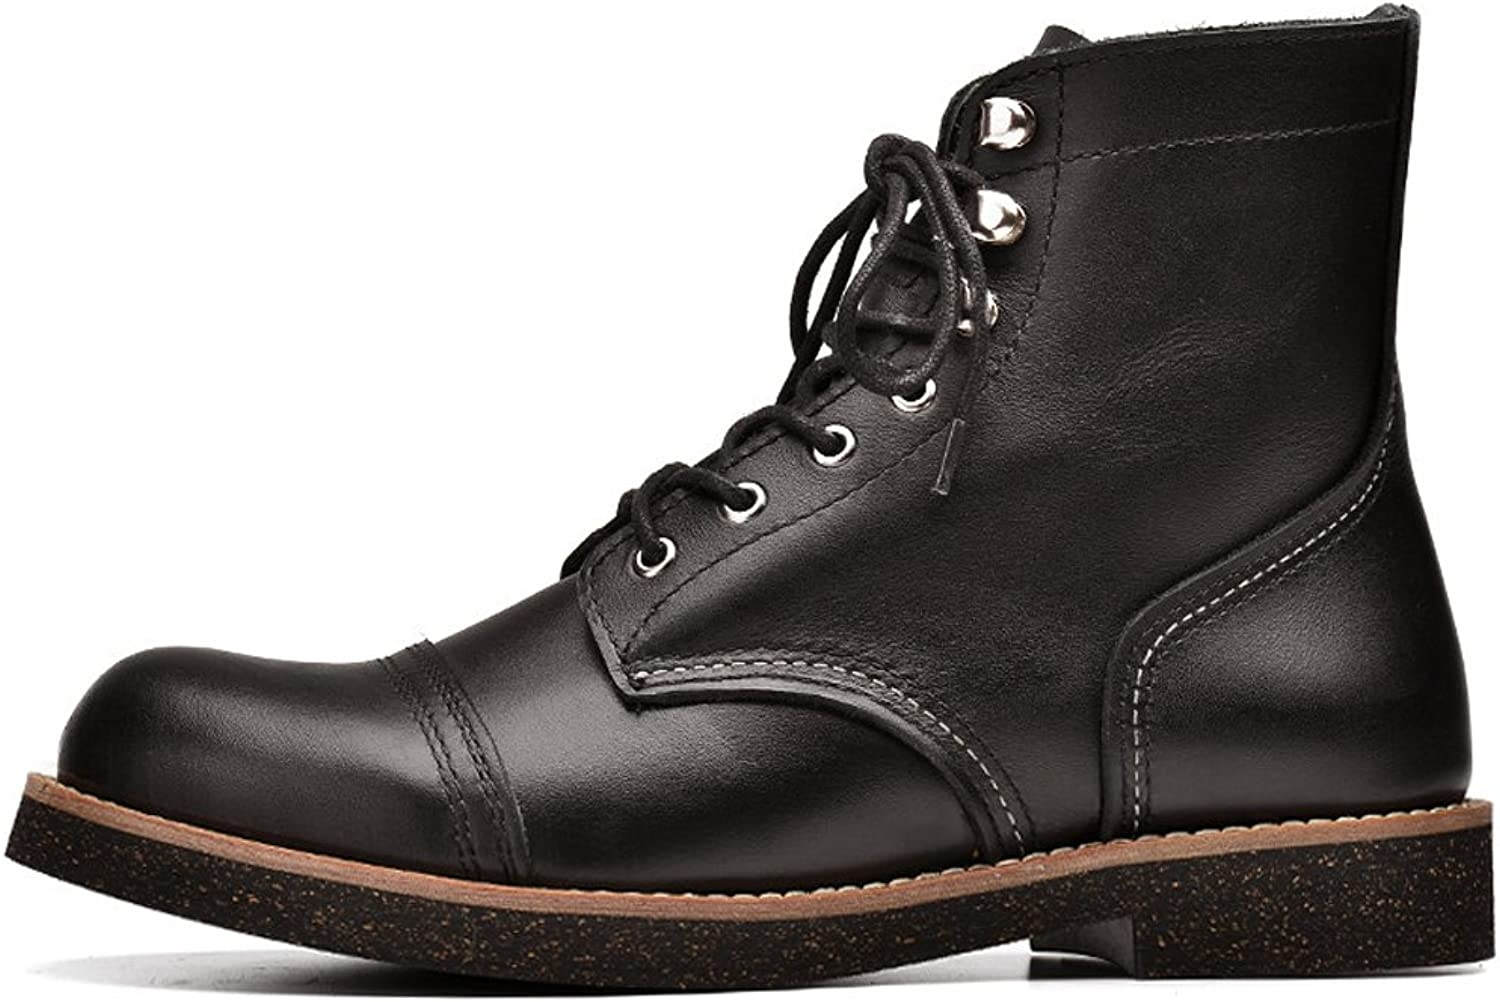 T-mod Comfortable Non Slip First Layer Genuine Leather Boots Stylish Casual Work shoes for Mens